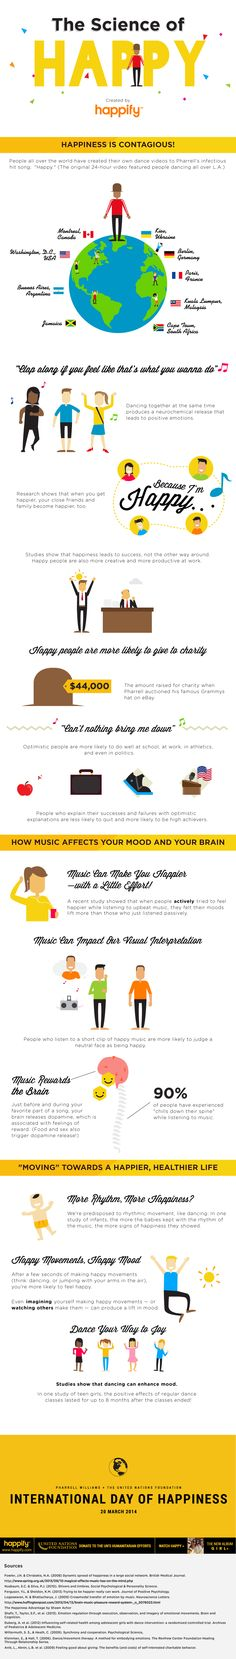 pharrell happy infographic. The science of happy. Music and your mood.